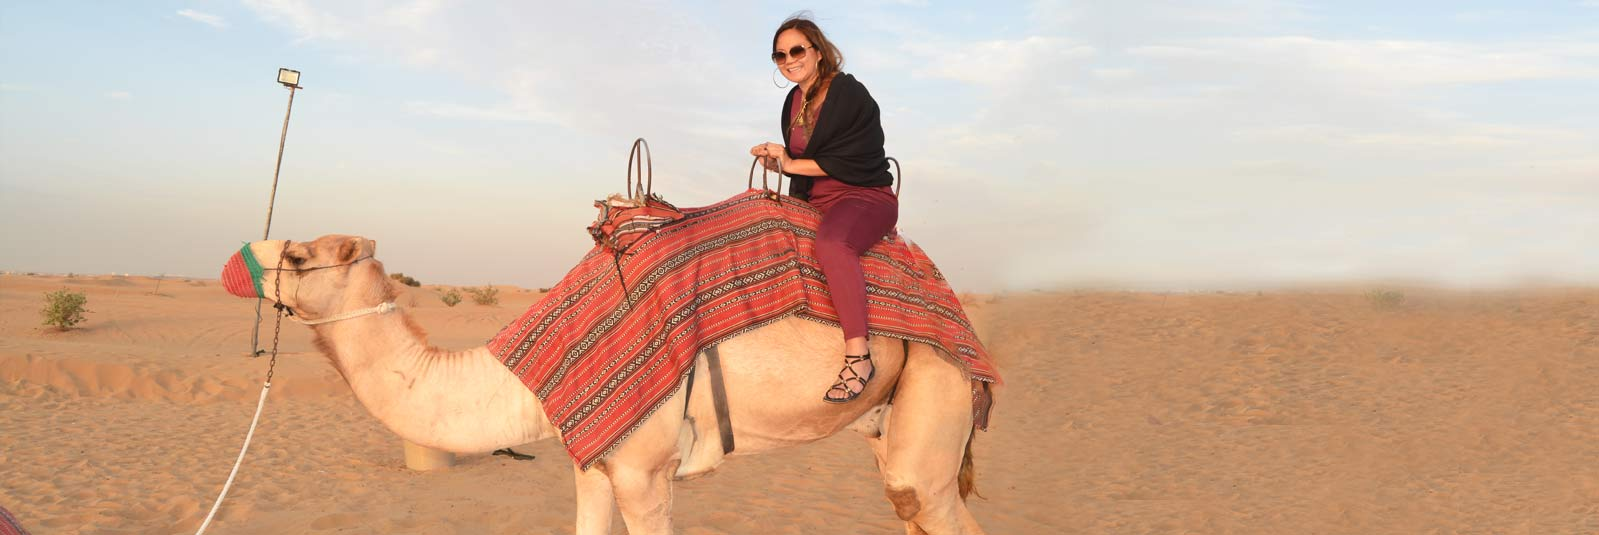 Camel-Ride-in-the-desert